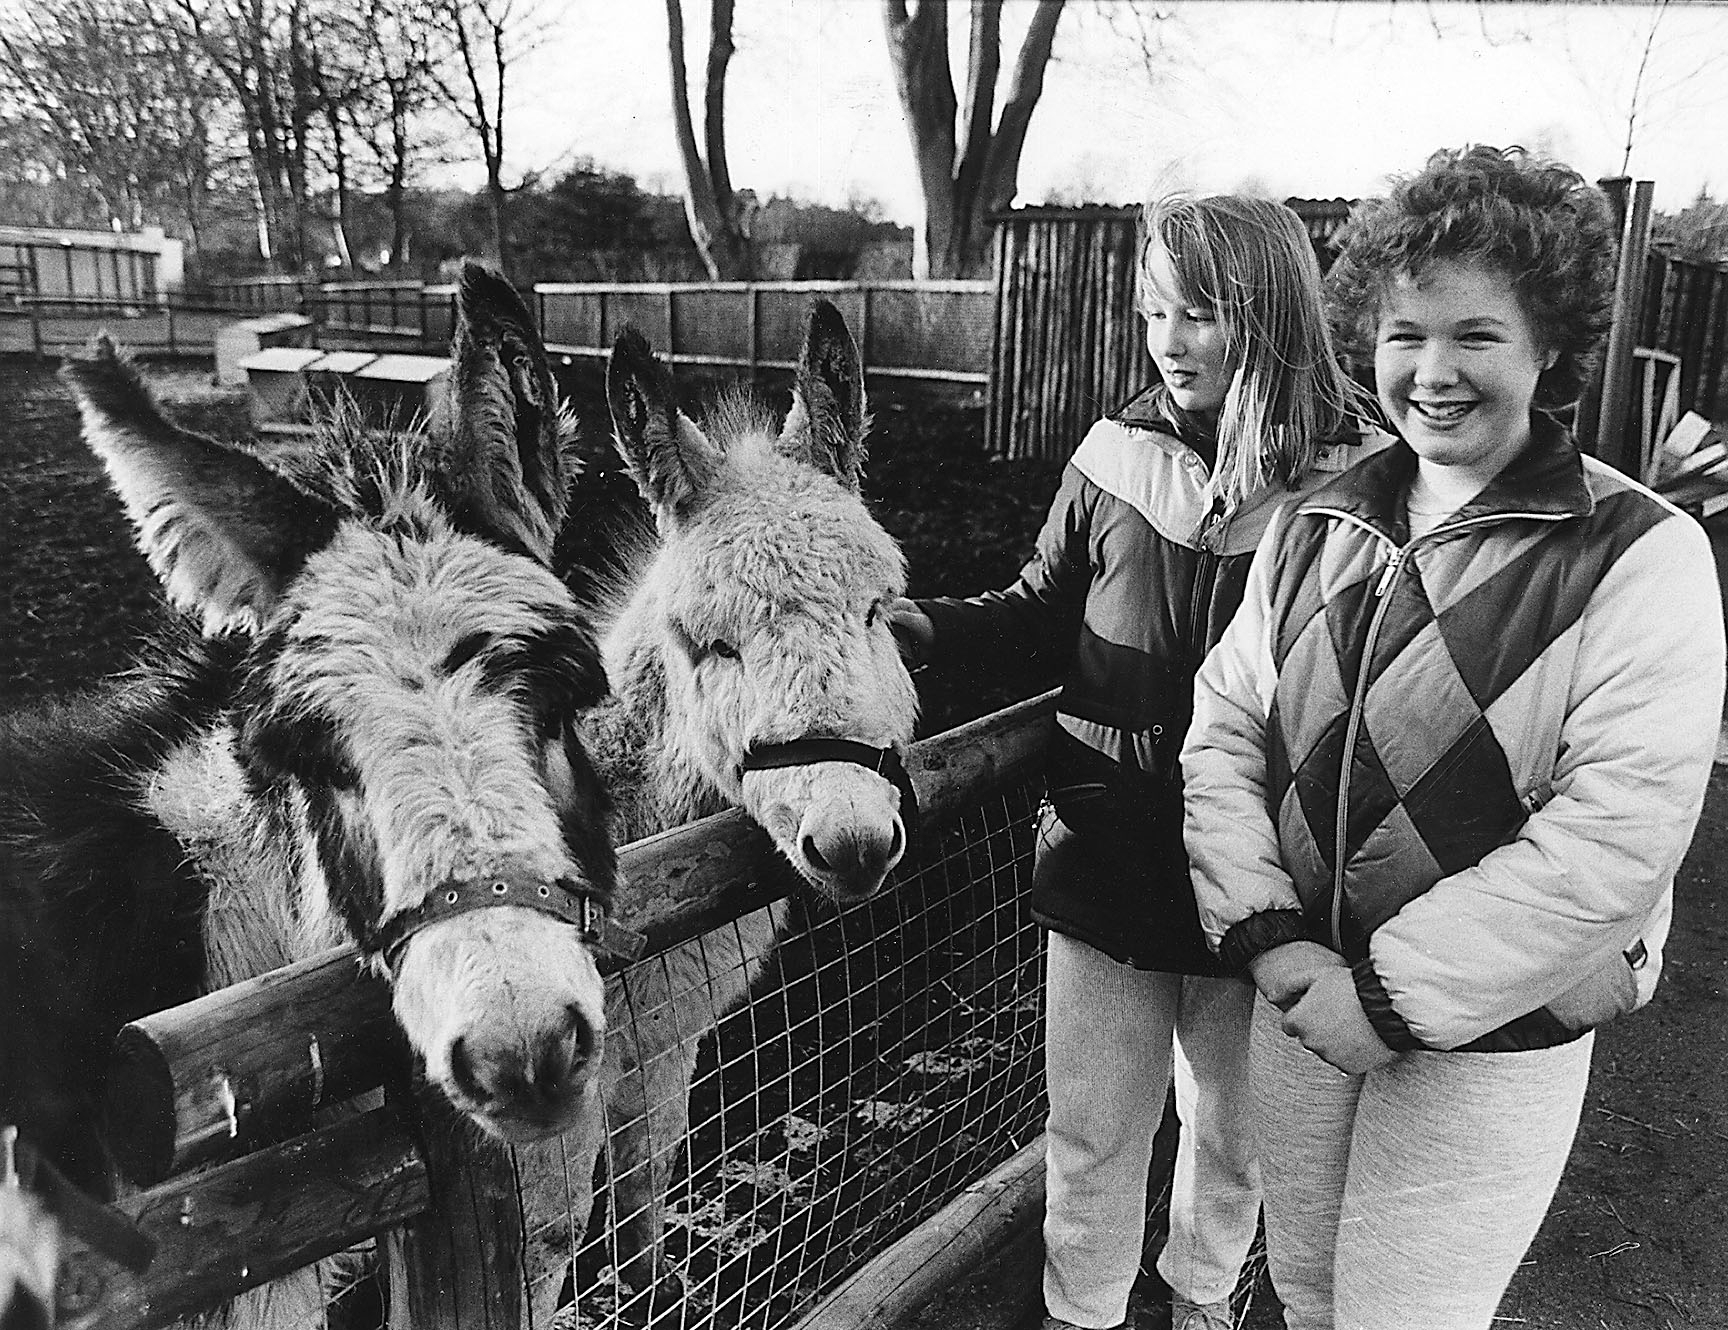 Stephanie Chesney and Nicola Connon with donkeys at the petting zoo.